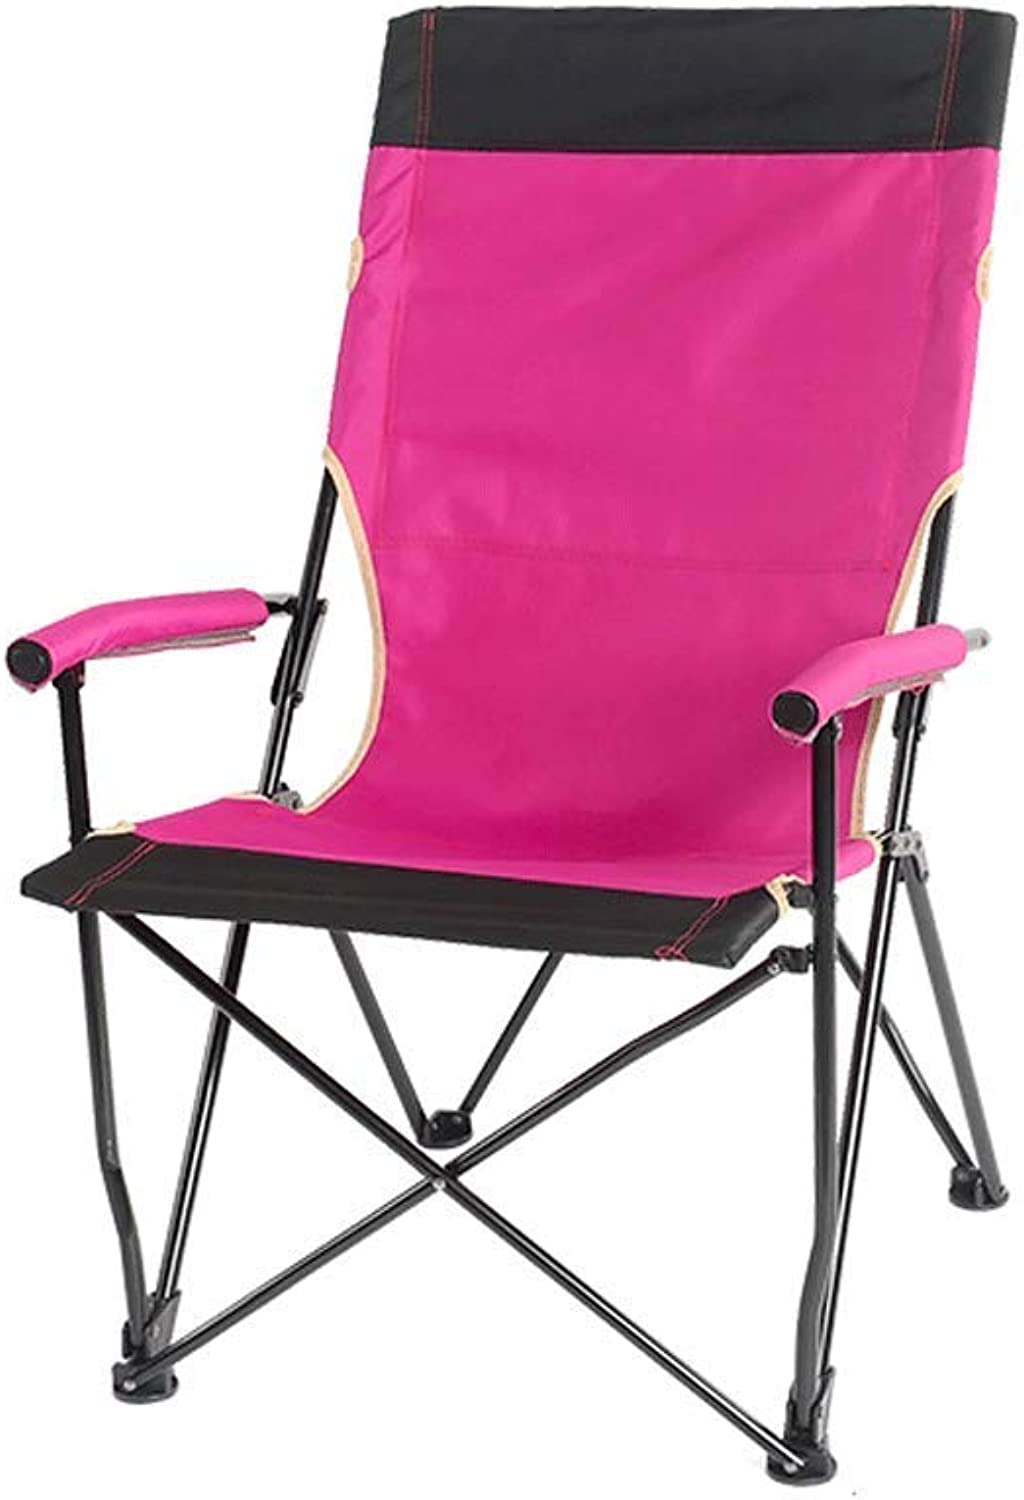 Outdoor Products Portable Folding Chairs Folding Stool Outdoor SelfDriving Mountaineering Easy to Carry Lightweight Sketch Park Rest Beach Chair